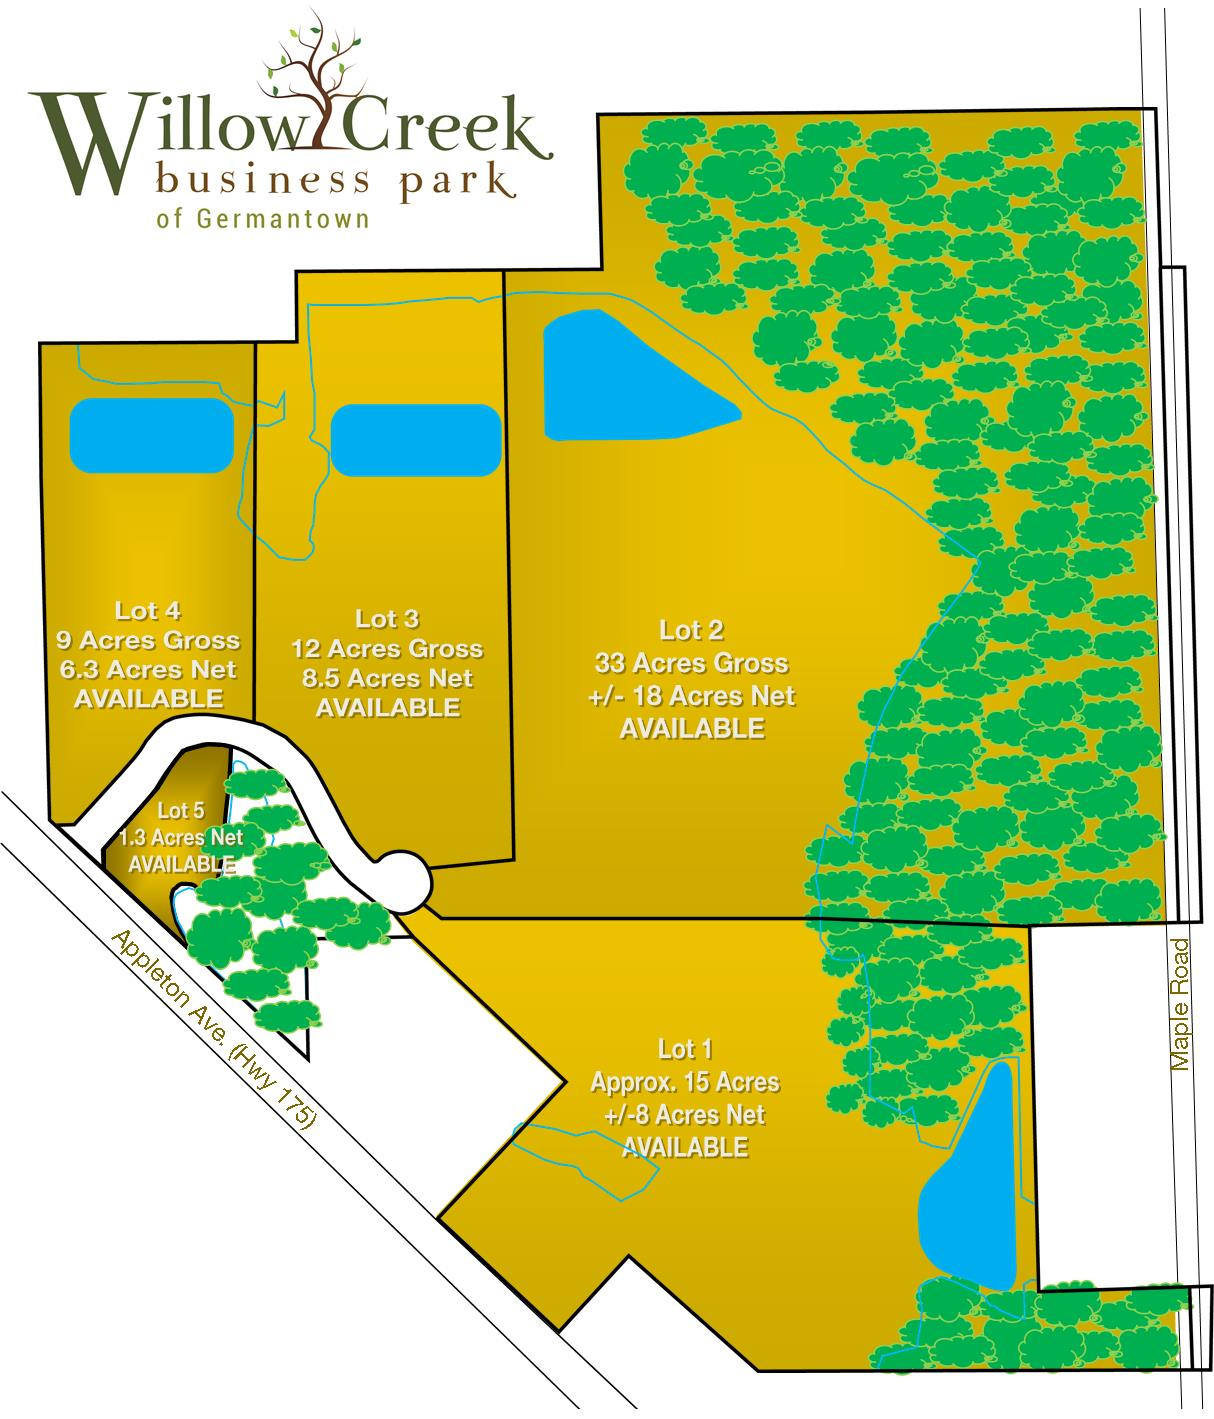 WILLOW CREEK BUSINESS PARK MAP 6-2016.jpg